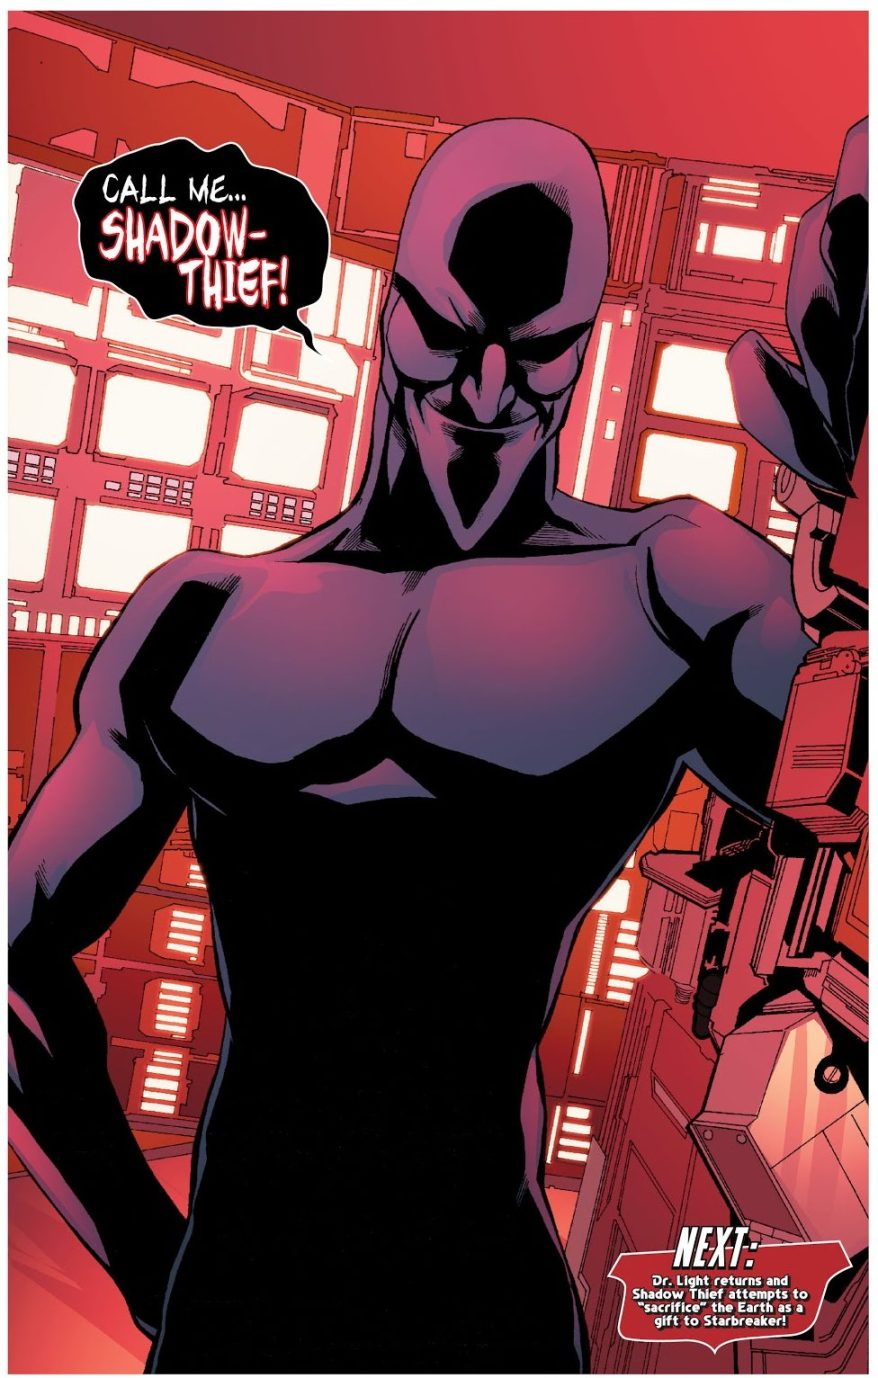 Shadow Thief (Justice League of America Vol. 2 #29)